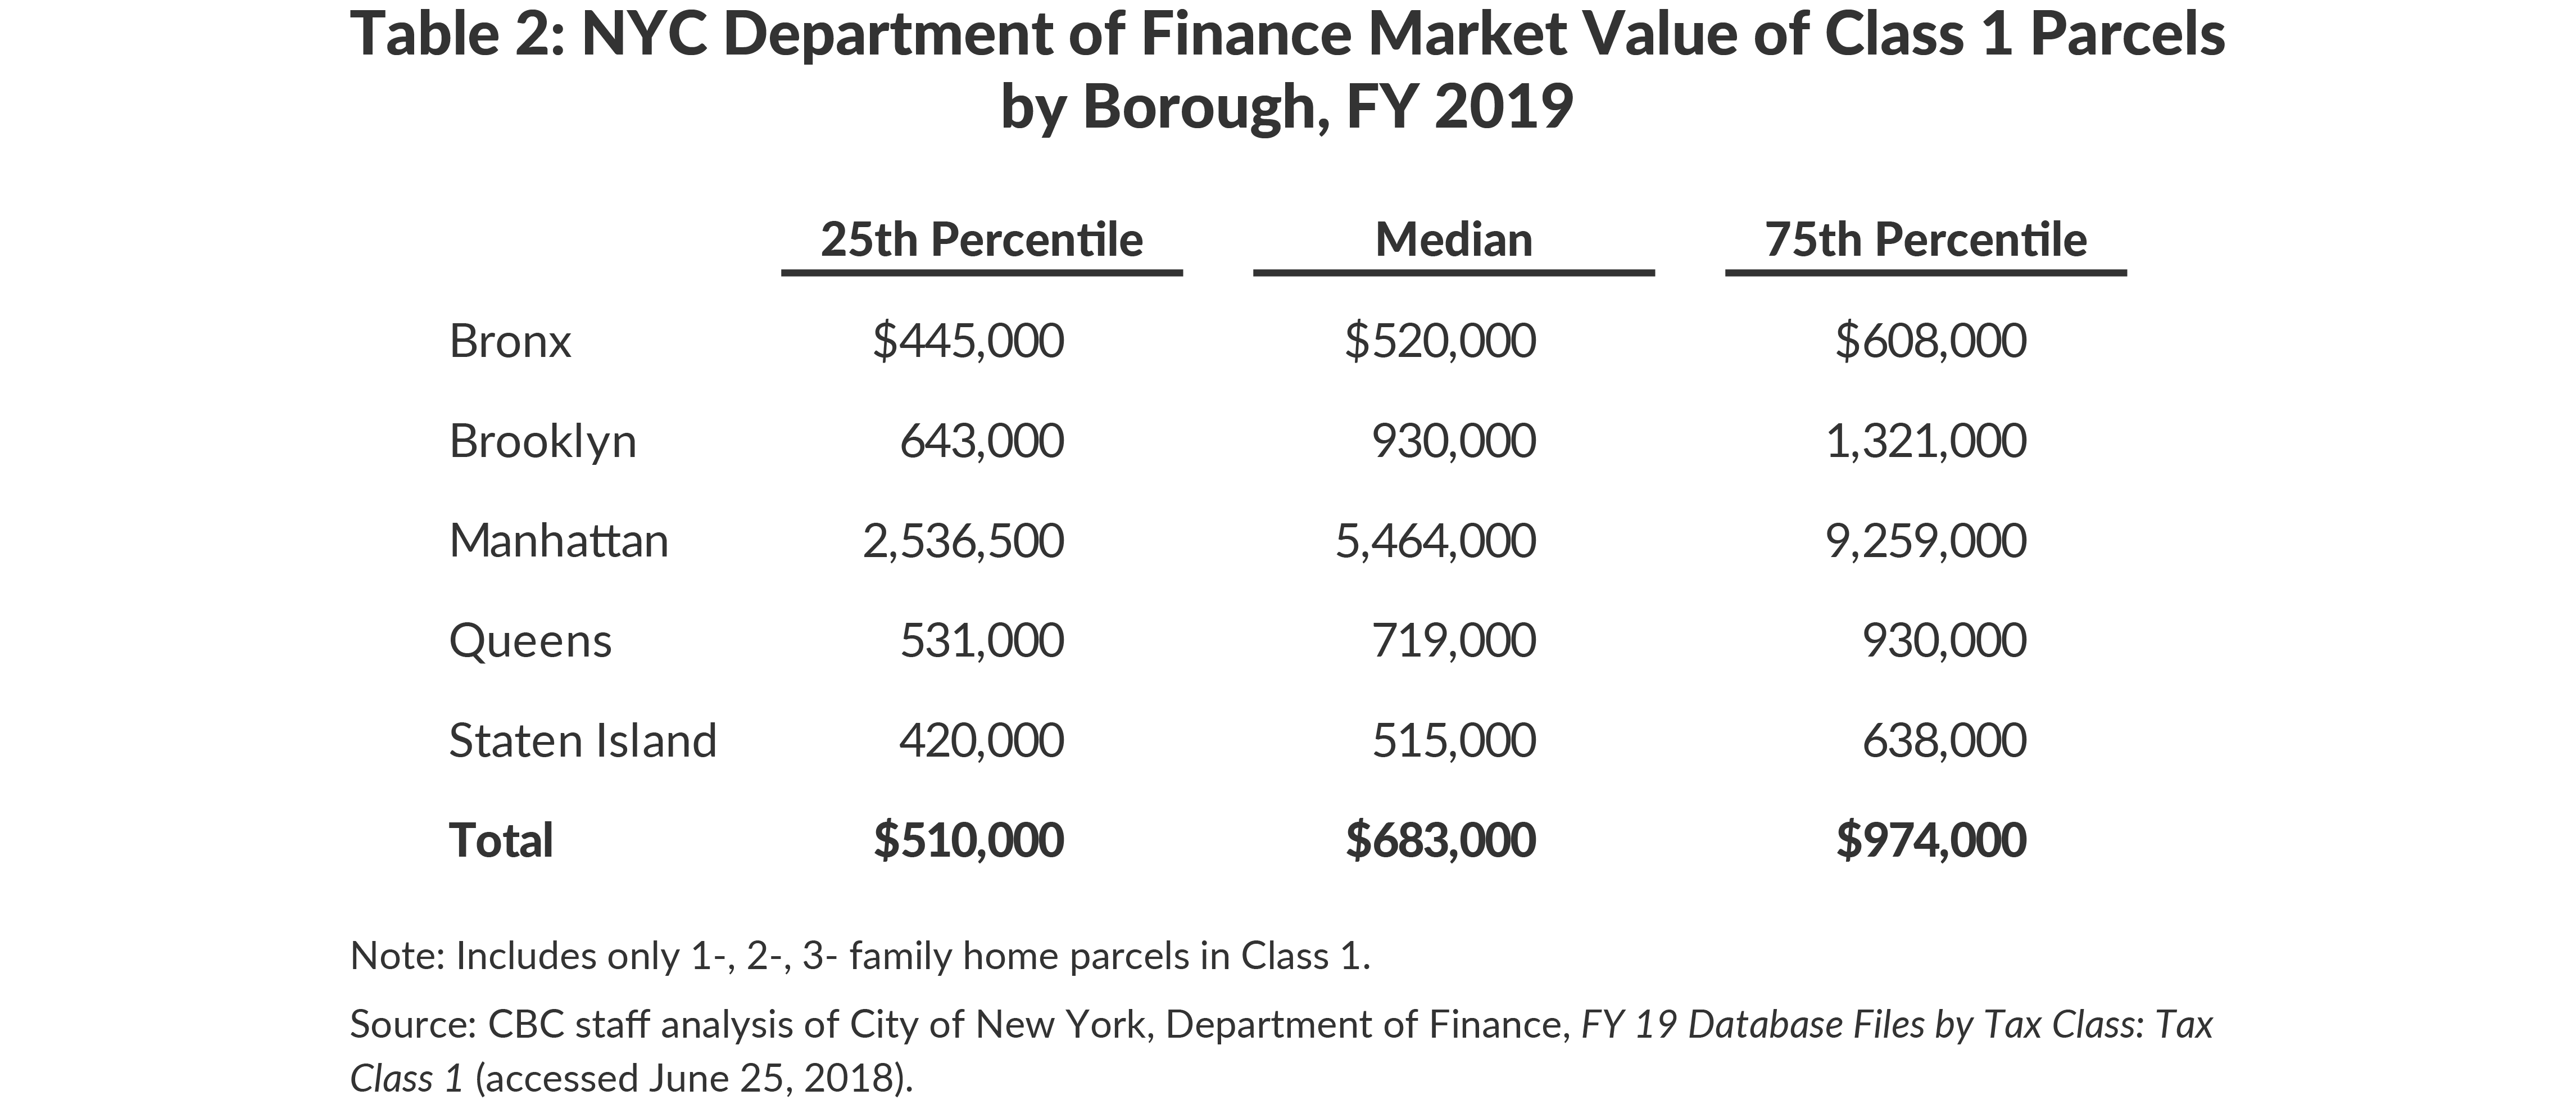 Table 2: NYC Department of Finance Market Value of Class 1 Parcelsby Borough, FY 2019